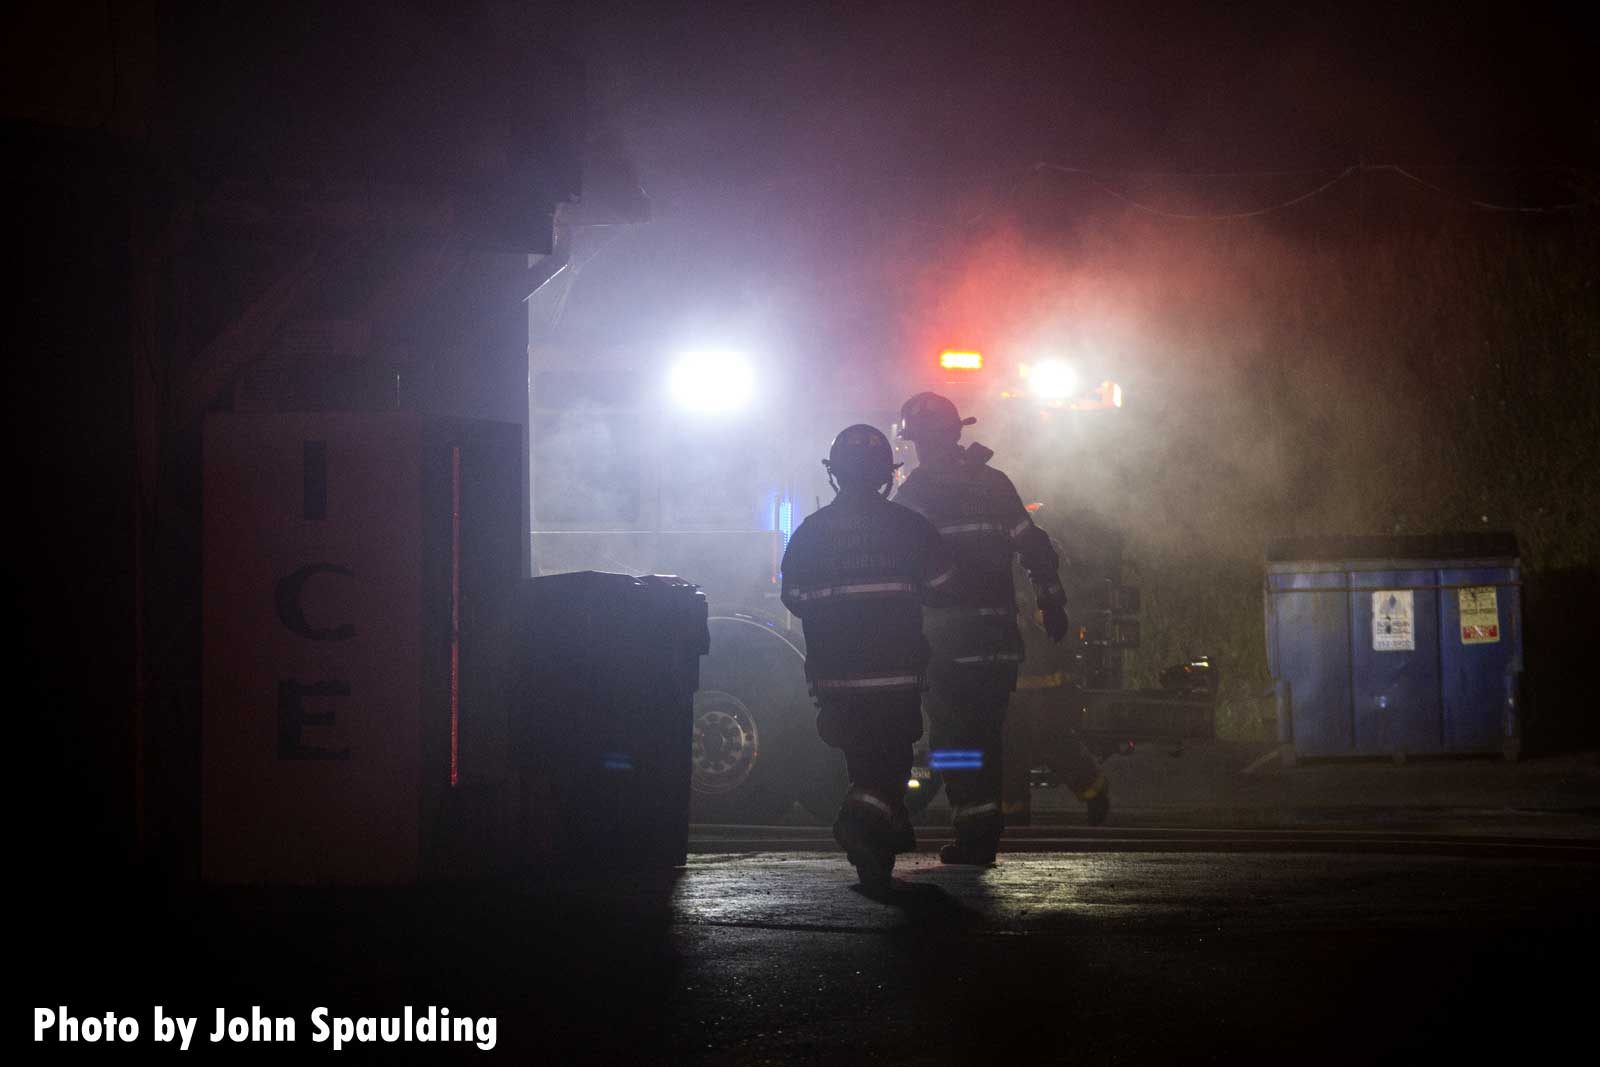 Firefighters navigating through the haze of the fire scene